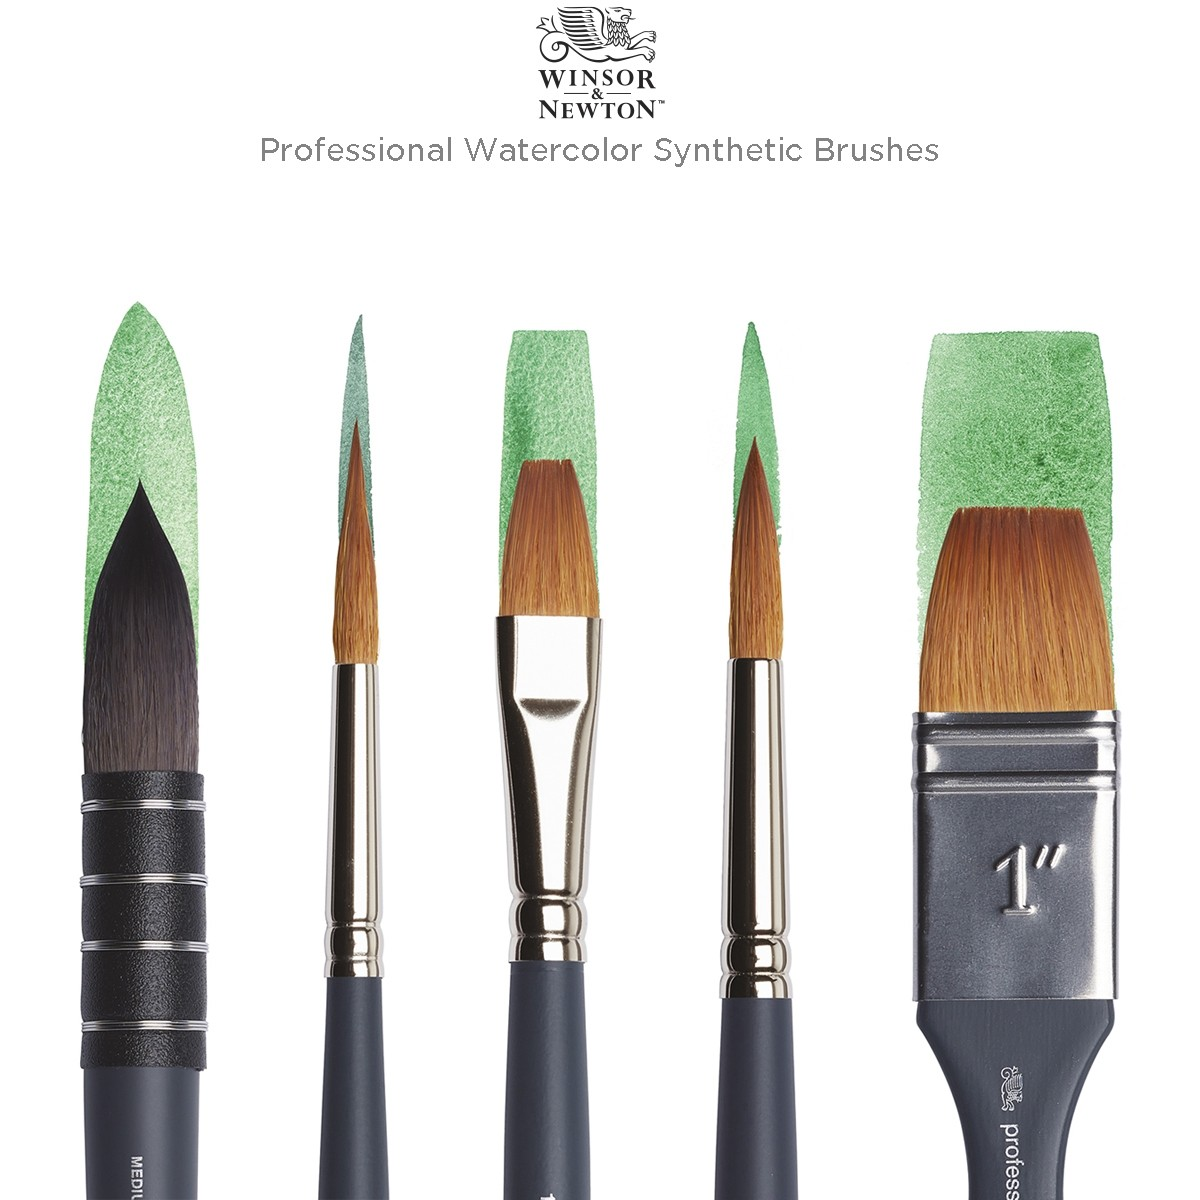 Winsor & Newton Professional Watercolor Synthetic Brushes